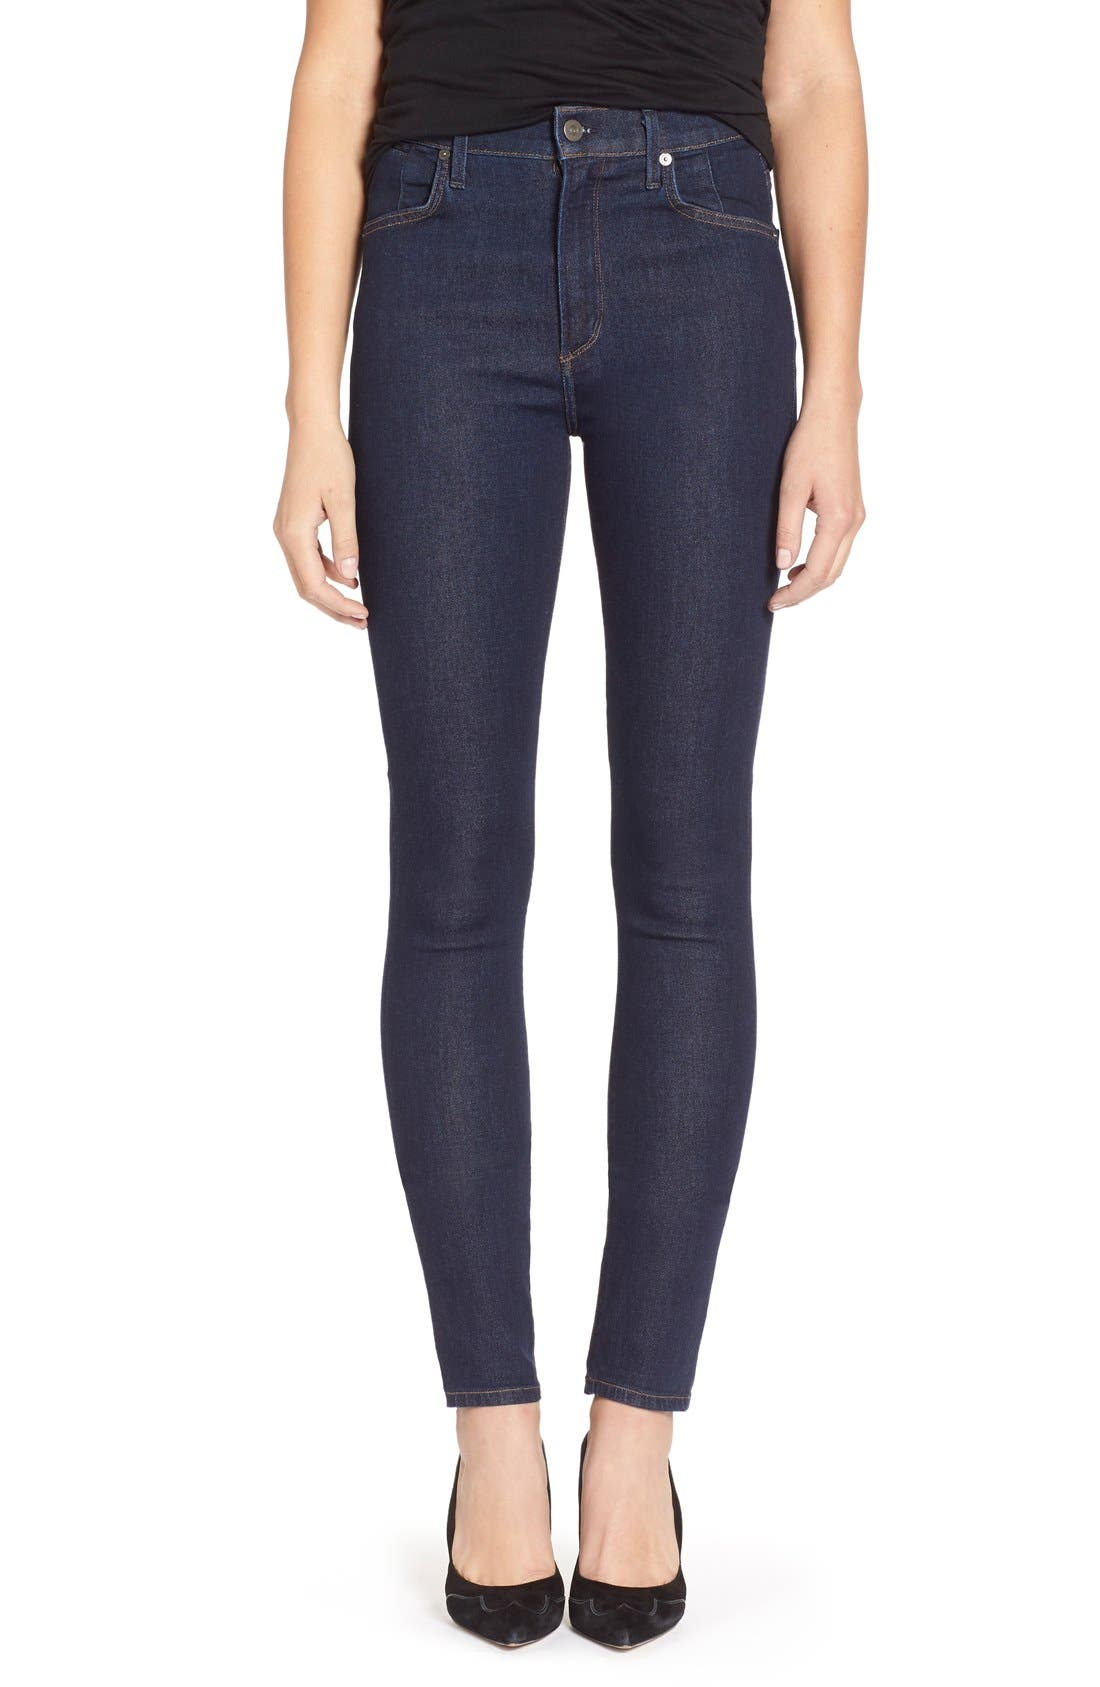 'Carlie' High Rise Skinny Jeans,                         Main,                         color, Clean Blue